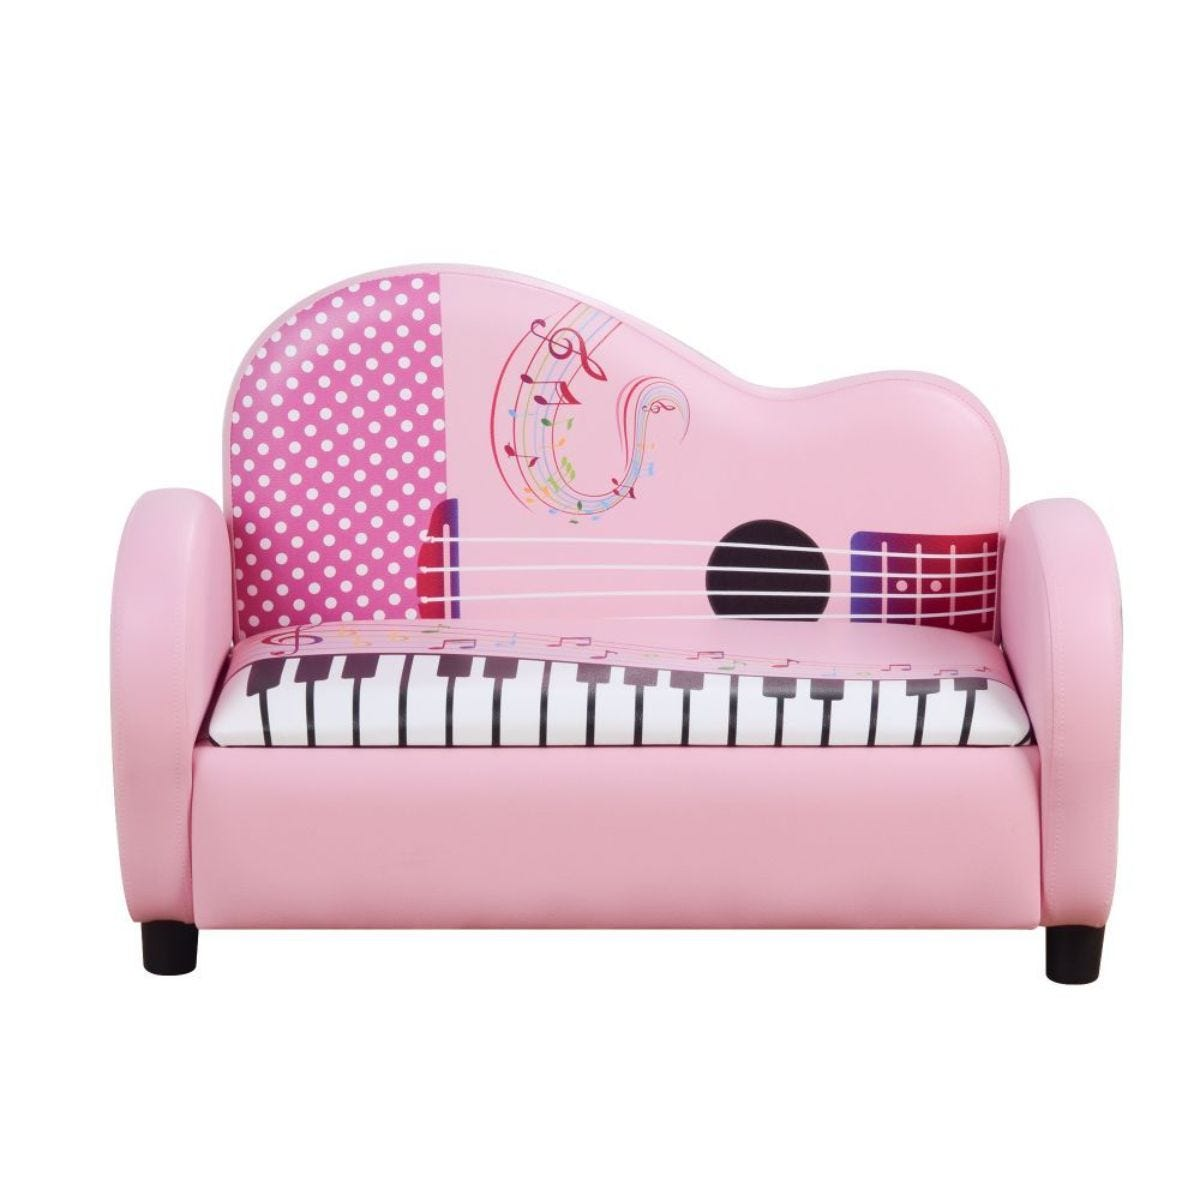 Kids Piano Shape 2 Seater Faux Leather Sofa With Storage Space Soft Pink